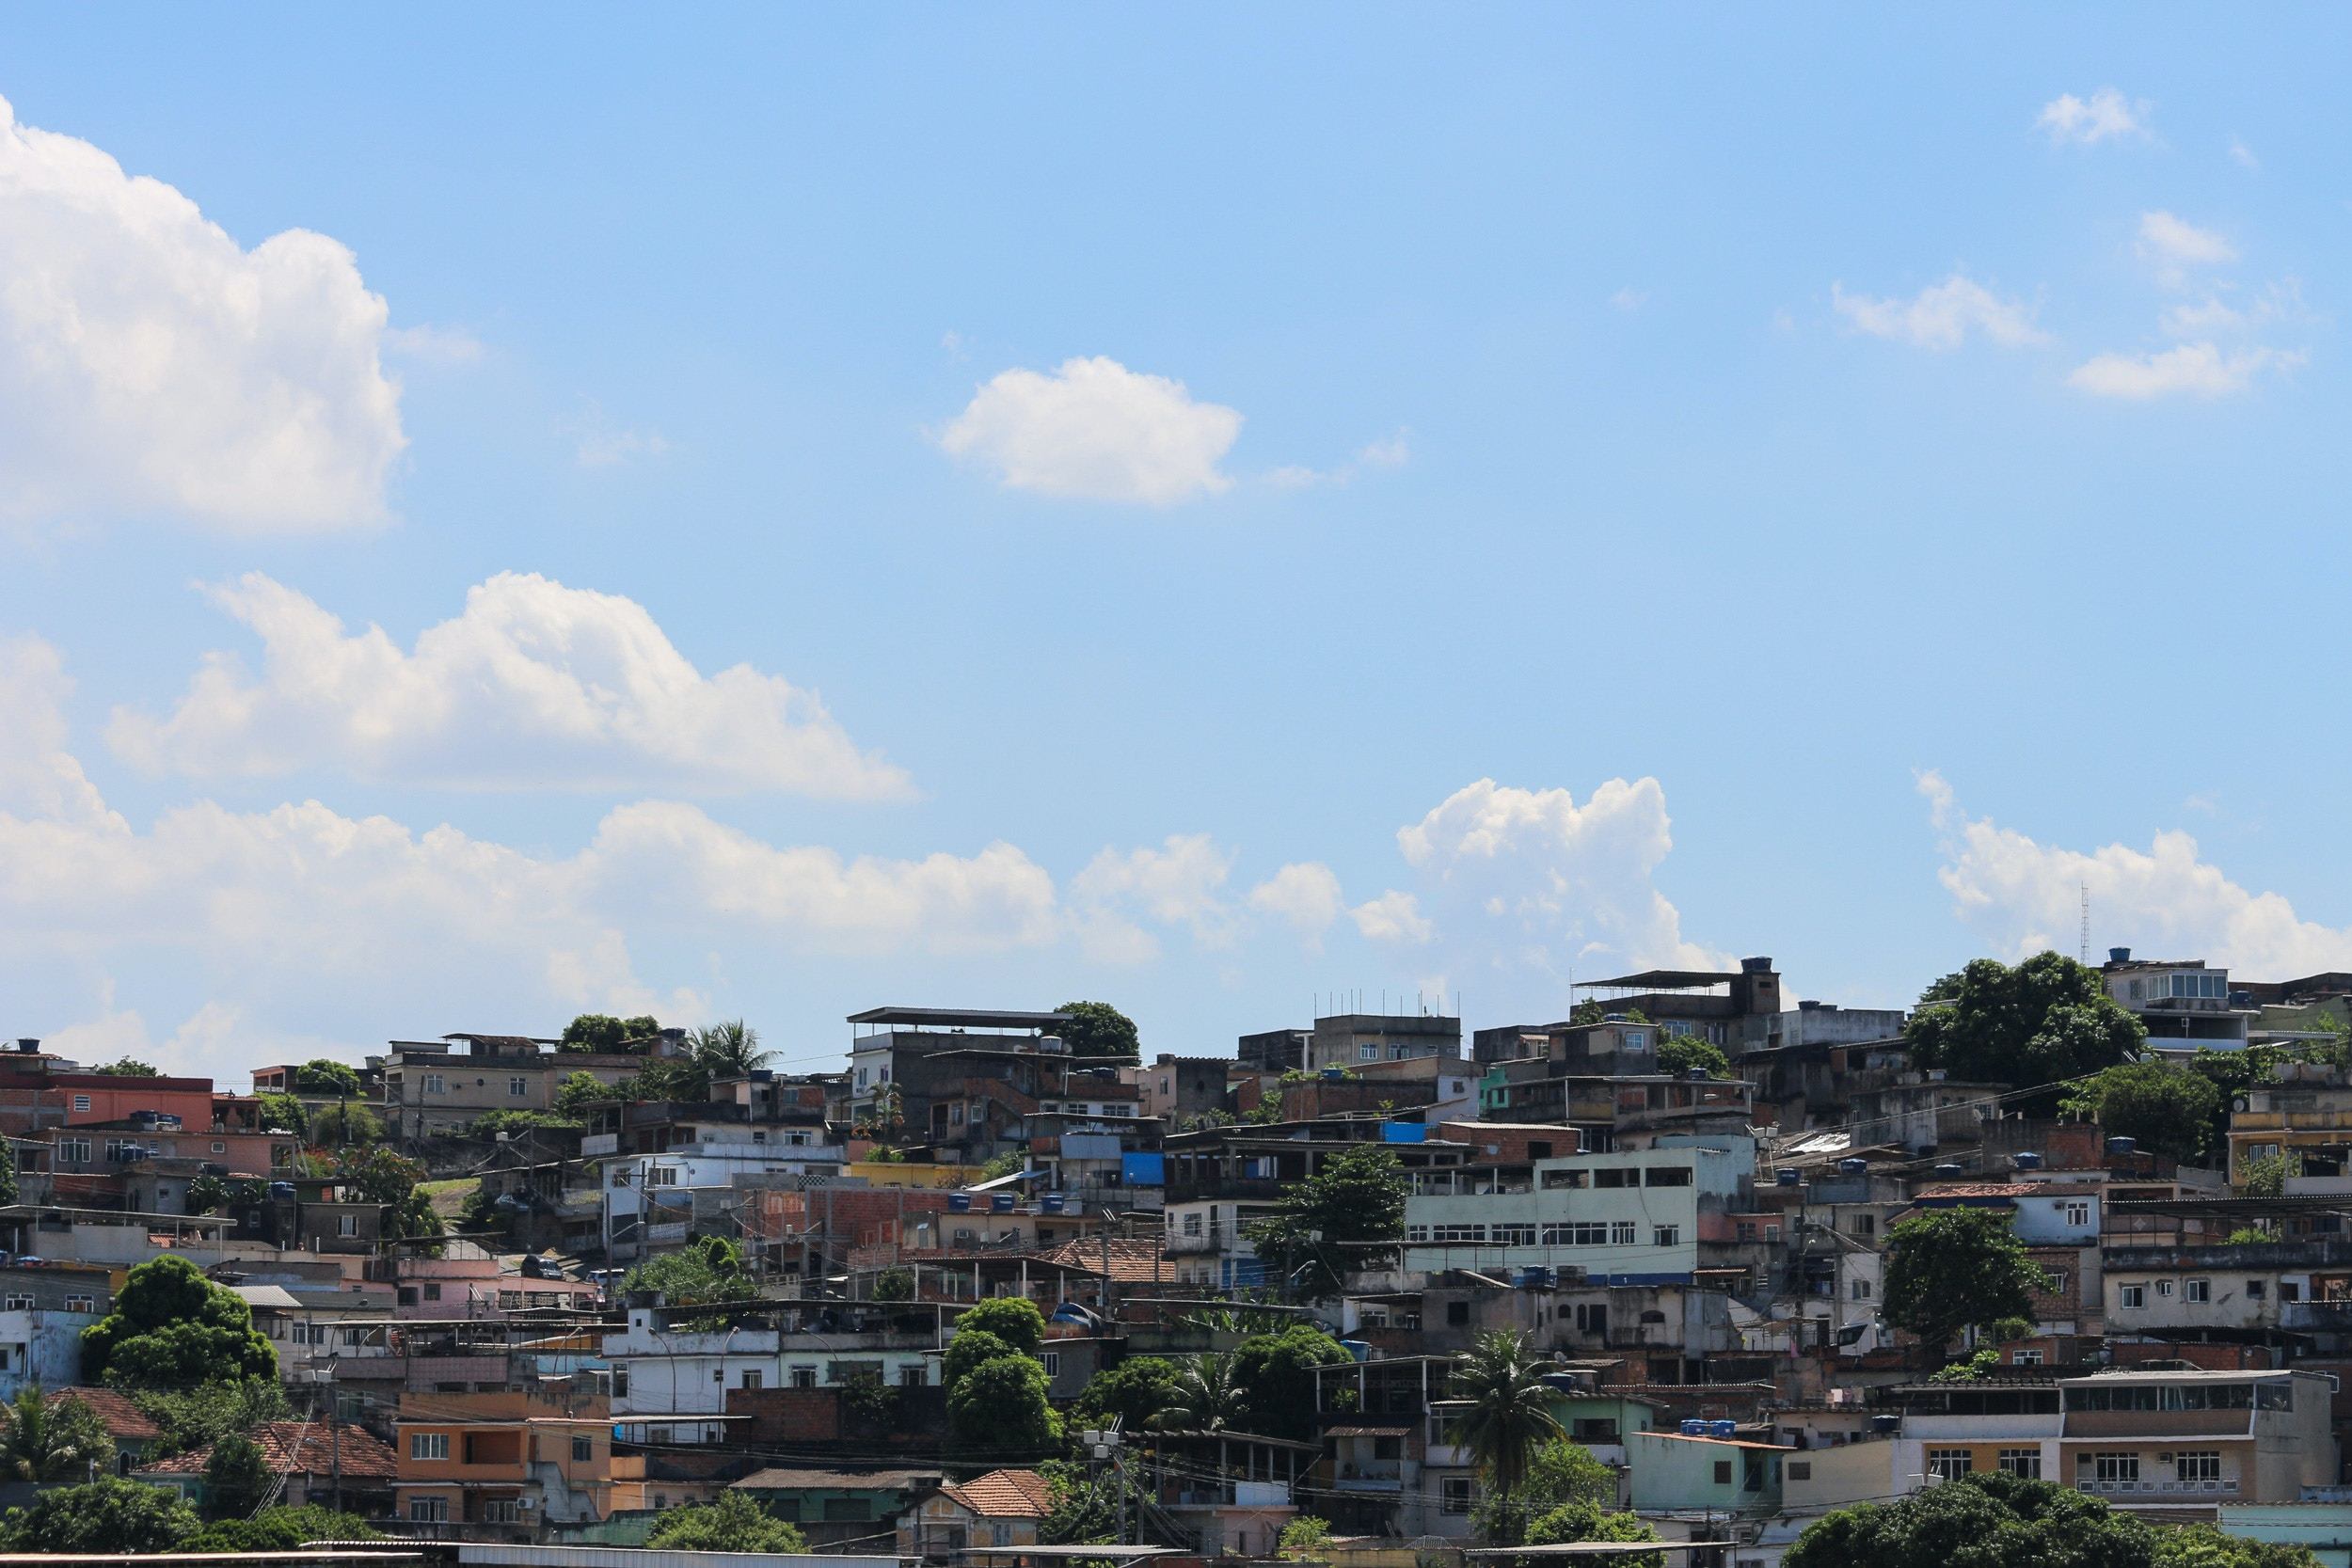 View of Favela Complexo do Chapadao in the north of Rio de Janeiro, Brazil, on March 25, 2020. Favelas will be the regions most affected by the Coronavirus Covid-19 in Rio de Janeiro, as they are densely populated regions where there are no basic sanitation resources and often not even piped water. (Photo by Luiz Souza/NurPhoto via Getty Images)